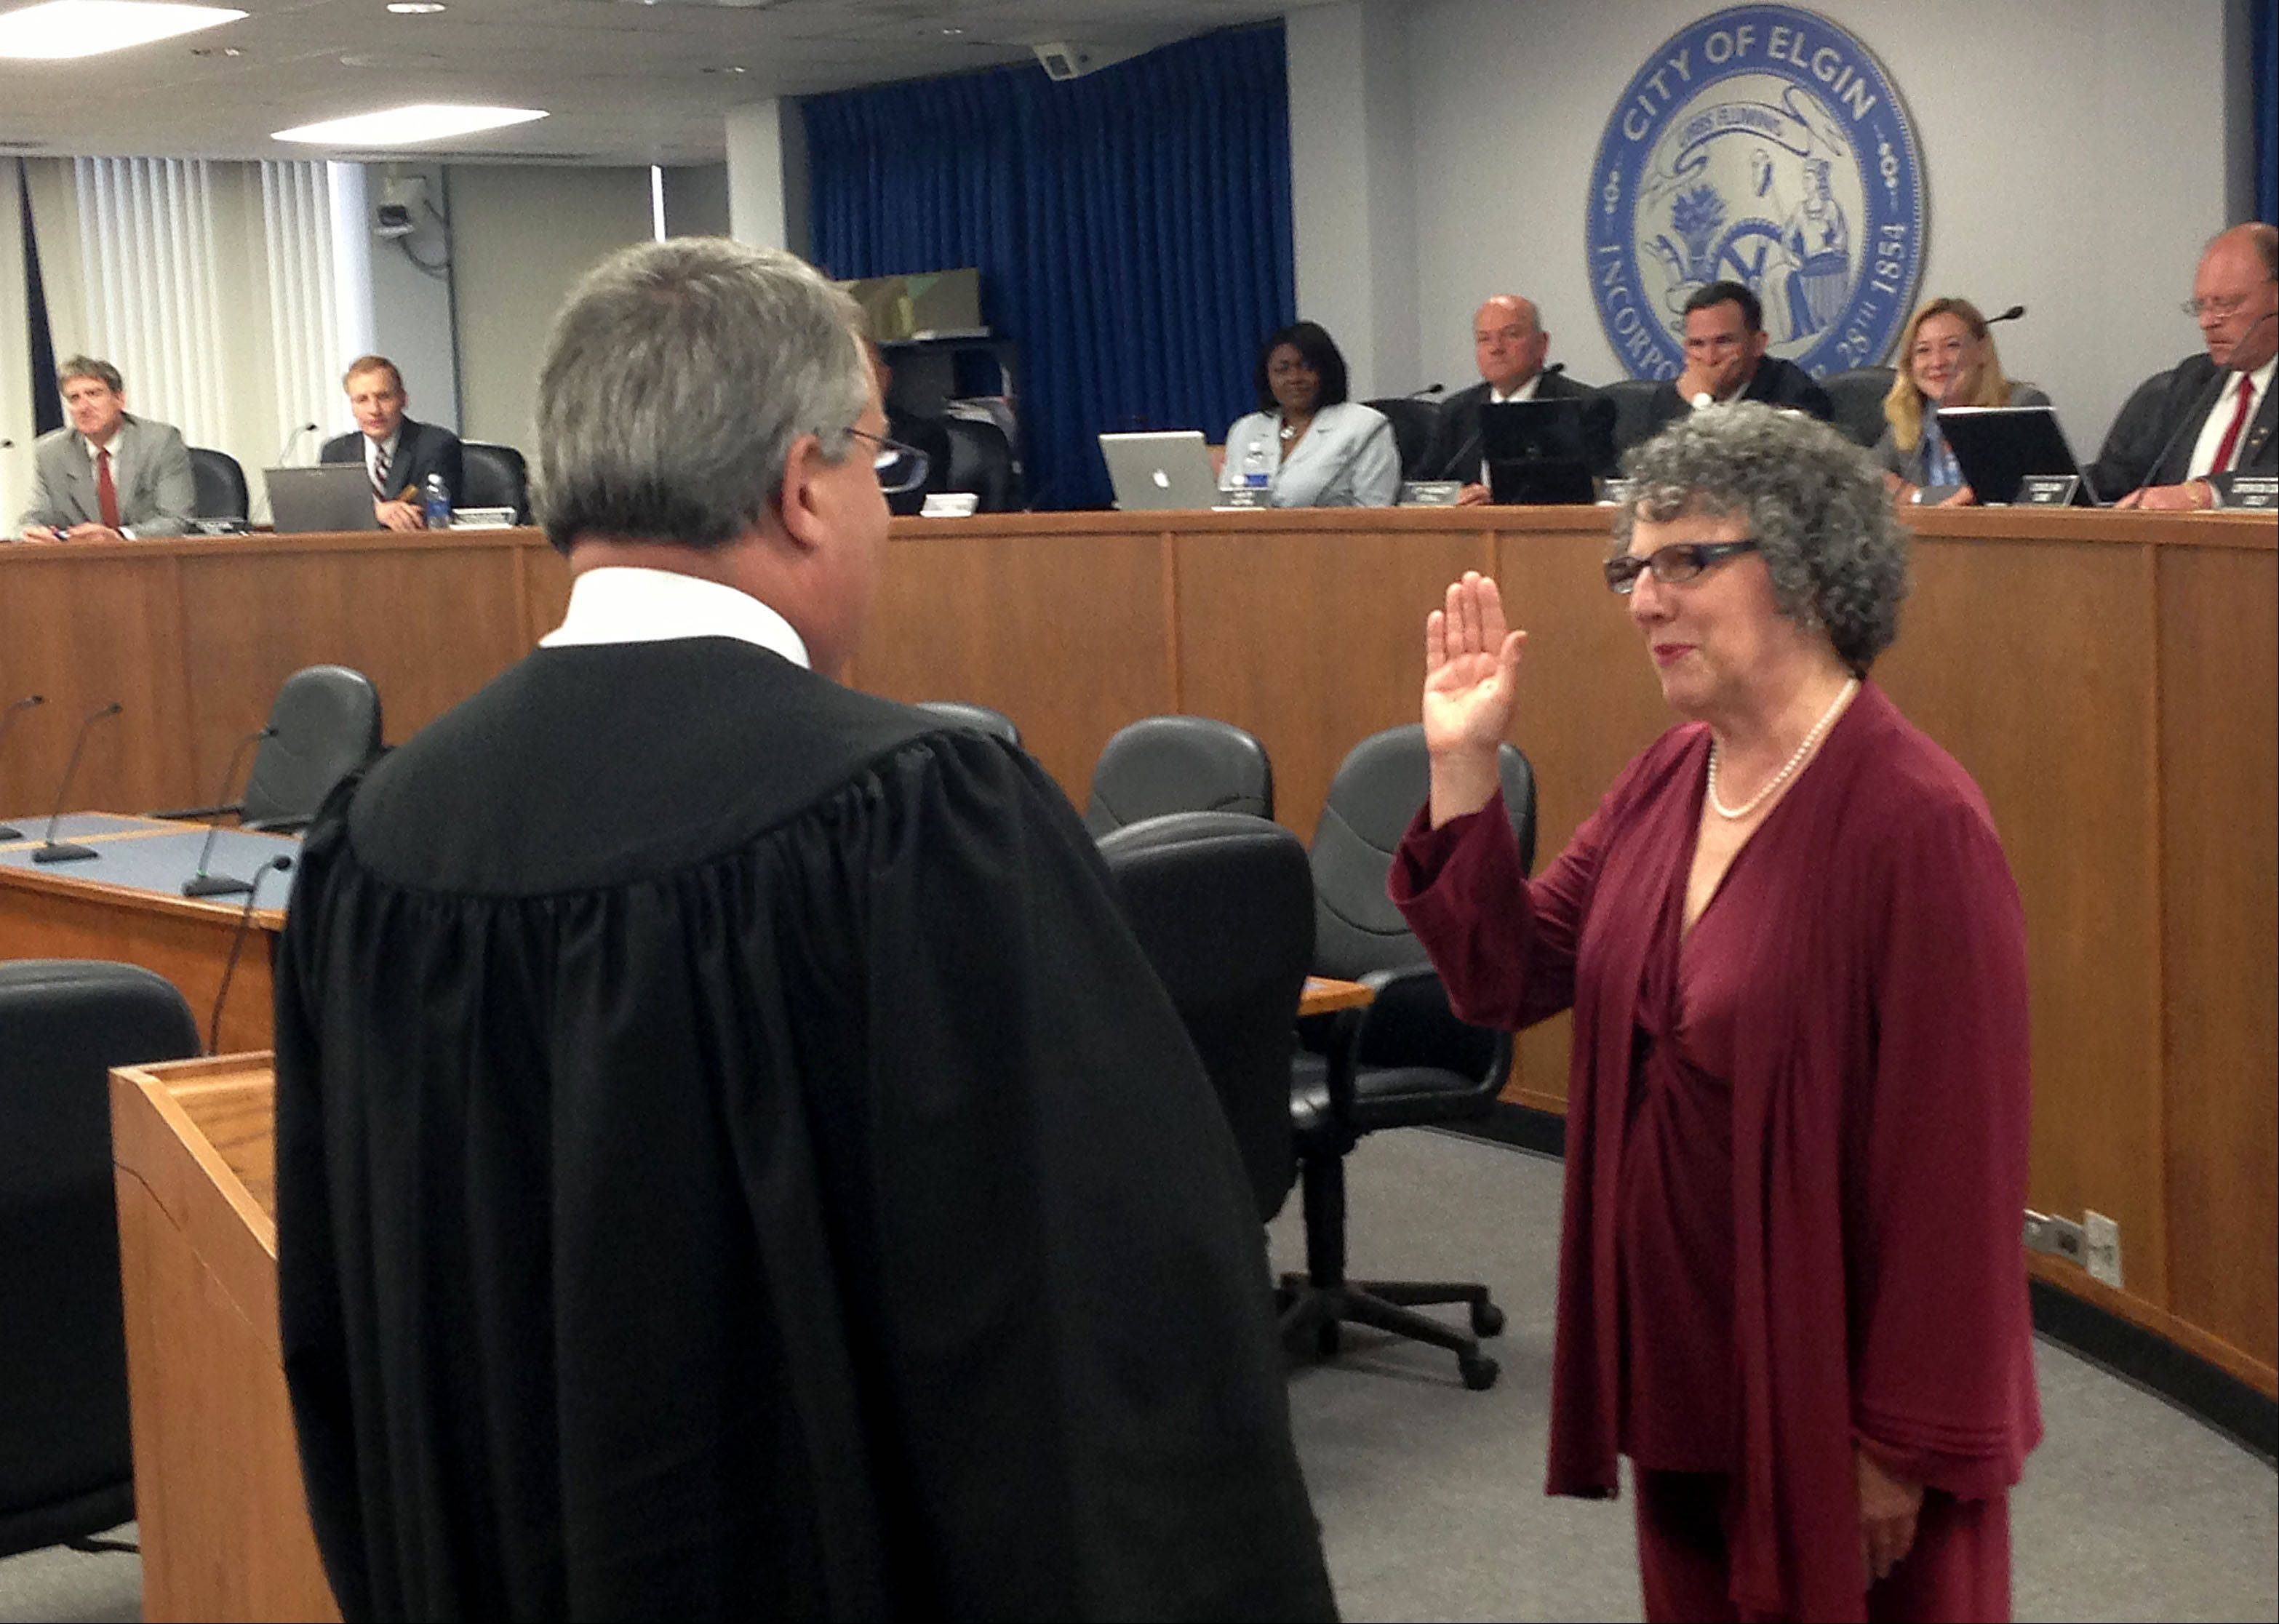 Newly elected Elgin councilwoman Carol Rauschenberger is sworn into office by Judge John G. Dalton, of the 16th Judicial Circuit in Kane County, on Wednesday night. There are now three women � out of nine members � on the Elgin City Council.